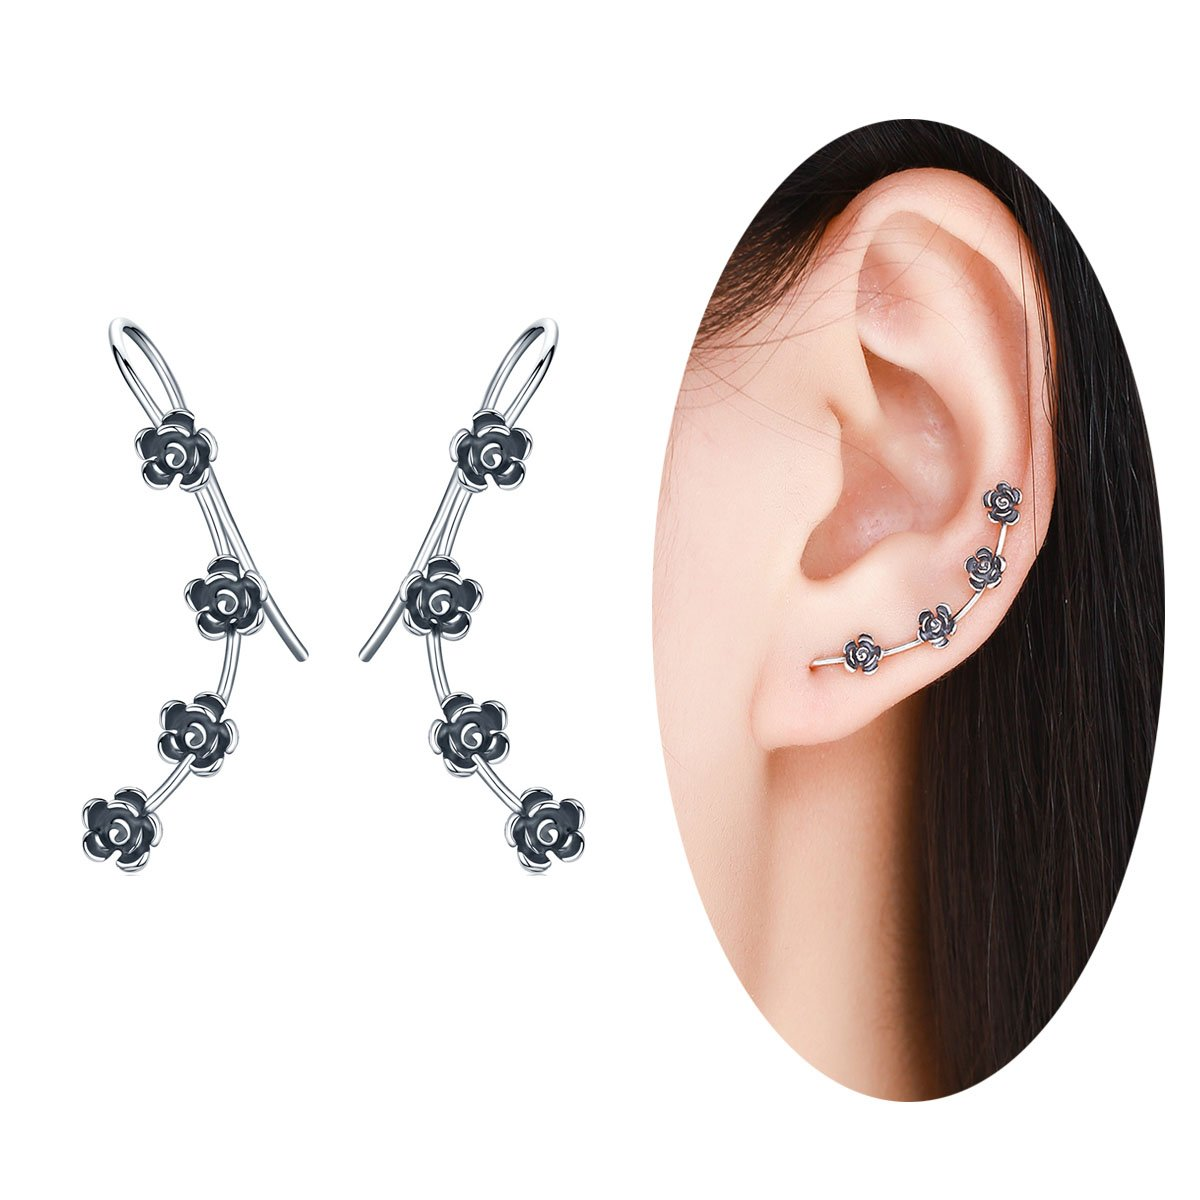 BAMOER New Arrival 925 Sterling Silver Antique Black Daisy Flowers Crawler Earrings for Women Teen Girls Thanksgiving Christmas Day Gifts (Black Flowers)